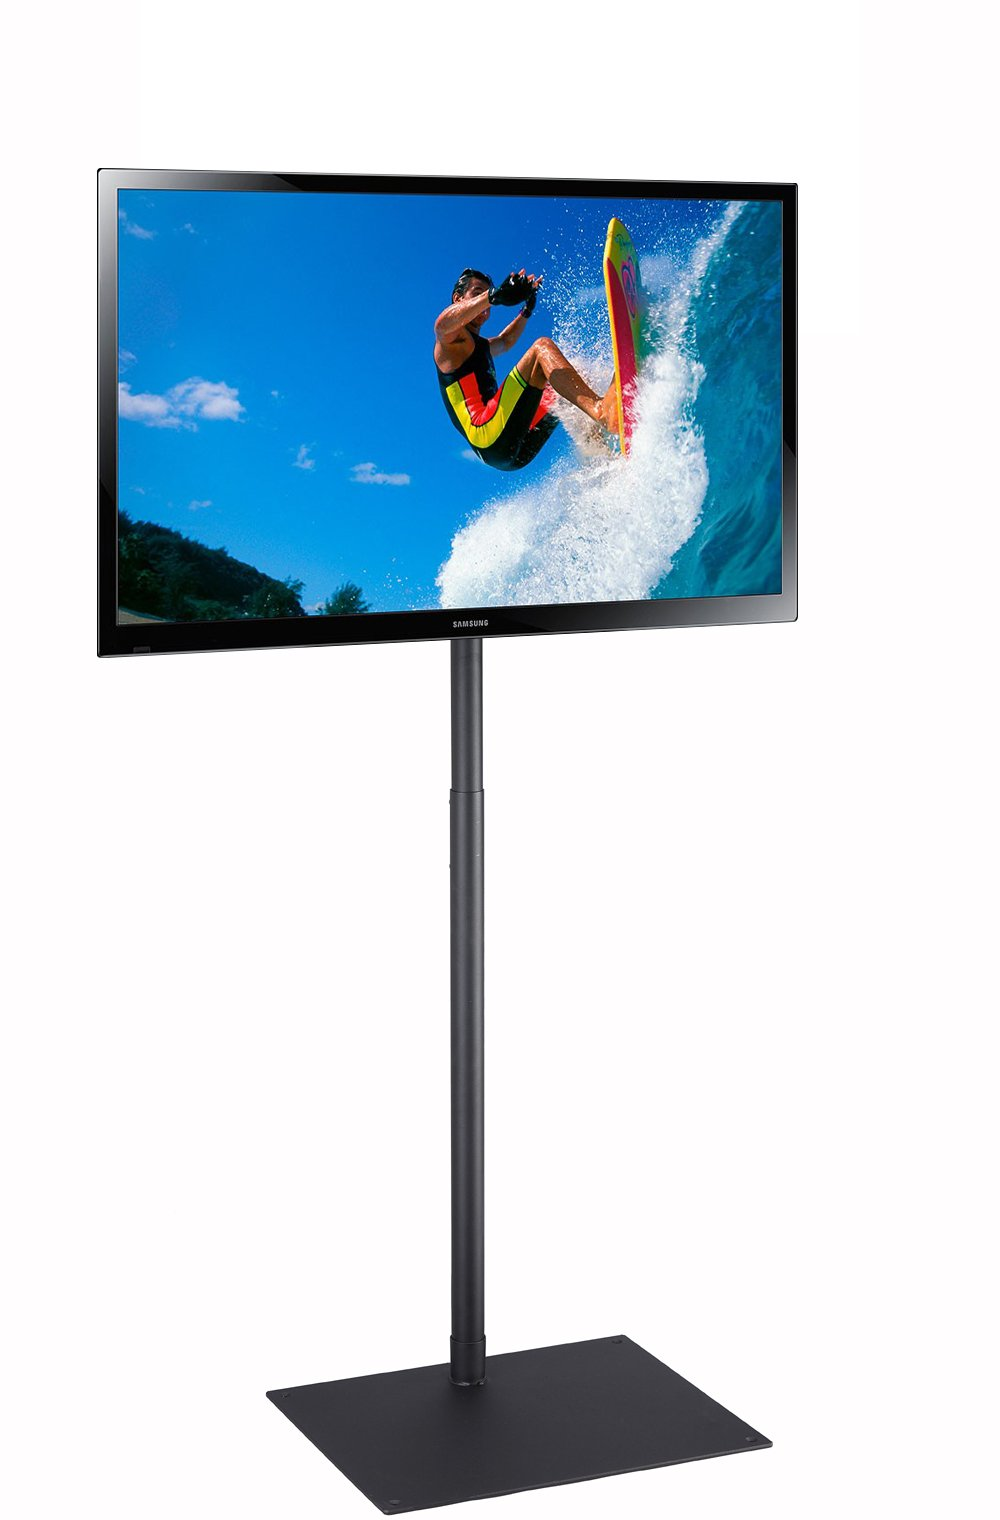 Elitech TV Display Portable Floor Stand Height Adjustable Mount for Flat Panel LED LCD Plasma Screen 32'' to 55'', Movable Free-Standing Stand or Bolted on the Floor as a Fixed Stand